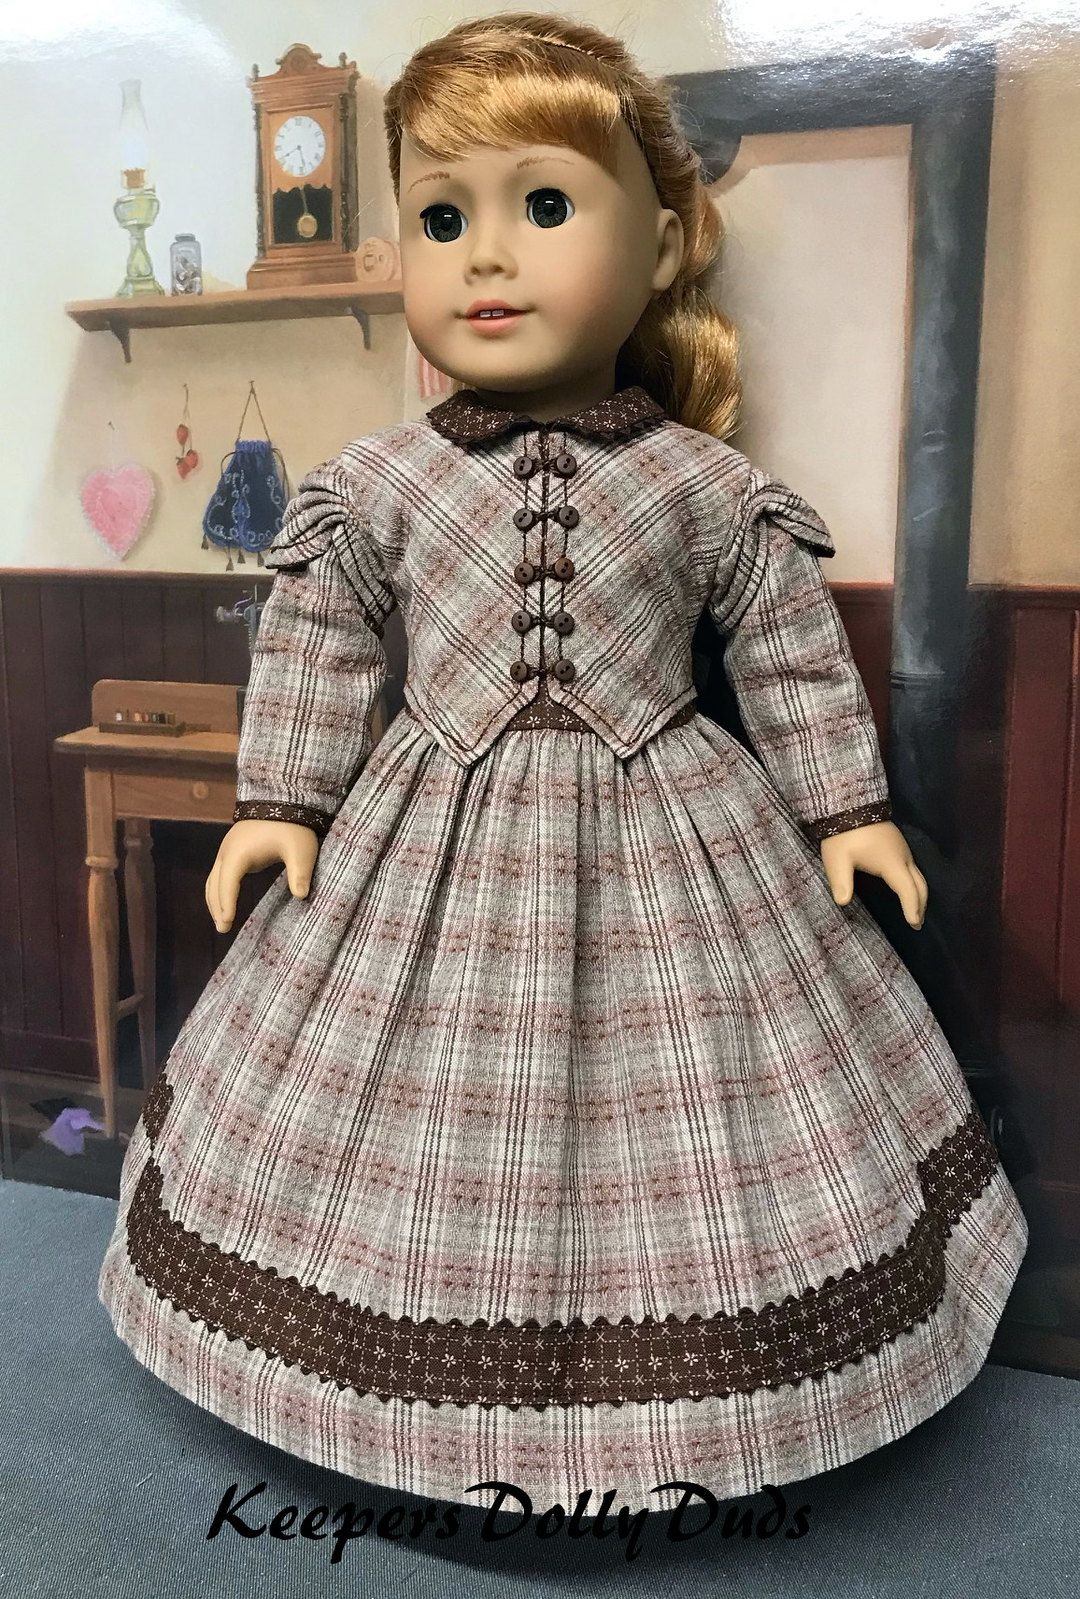 Plaid Civil War Dress made to fit American Girl Doll